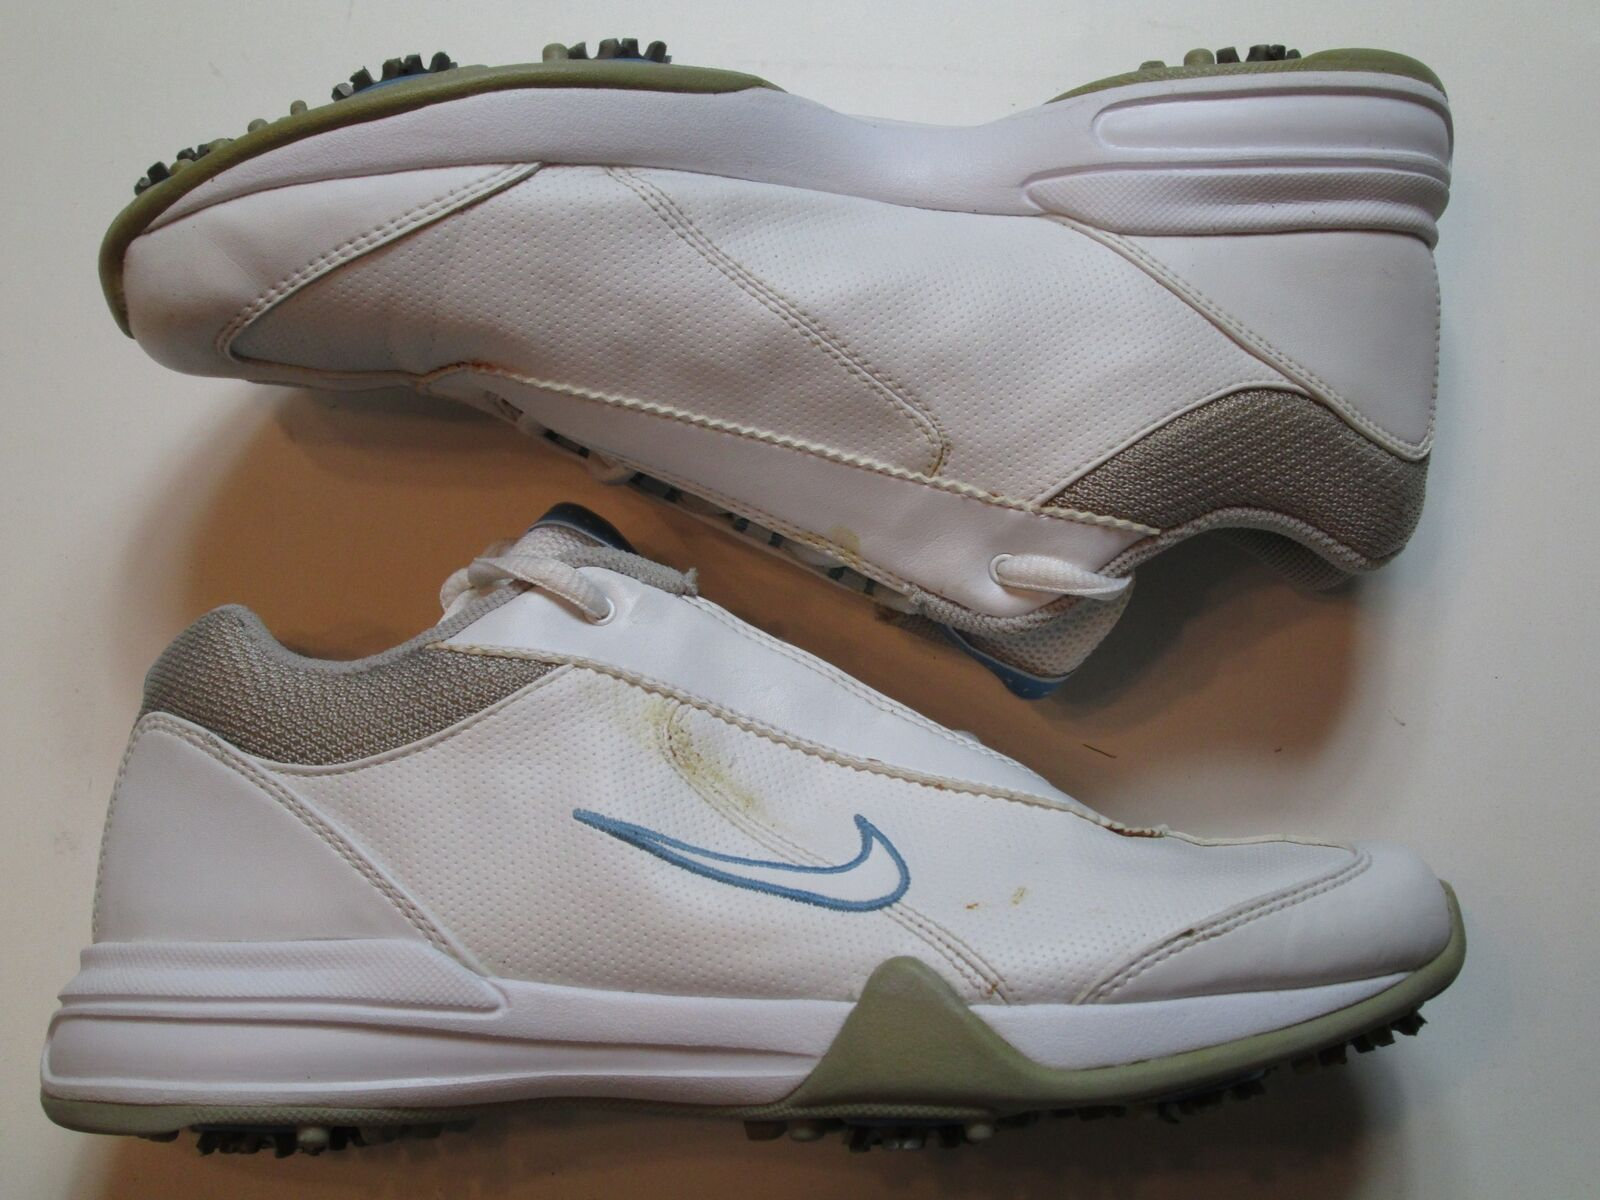 Wild casual shoes Nike Air Mens White Golf Shoe Cleats Comfortable